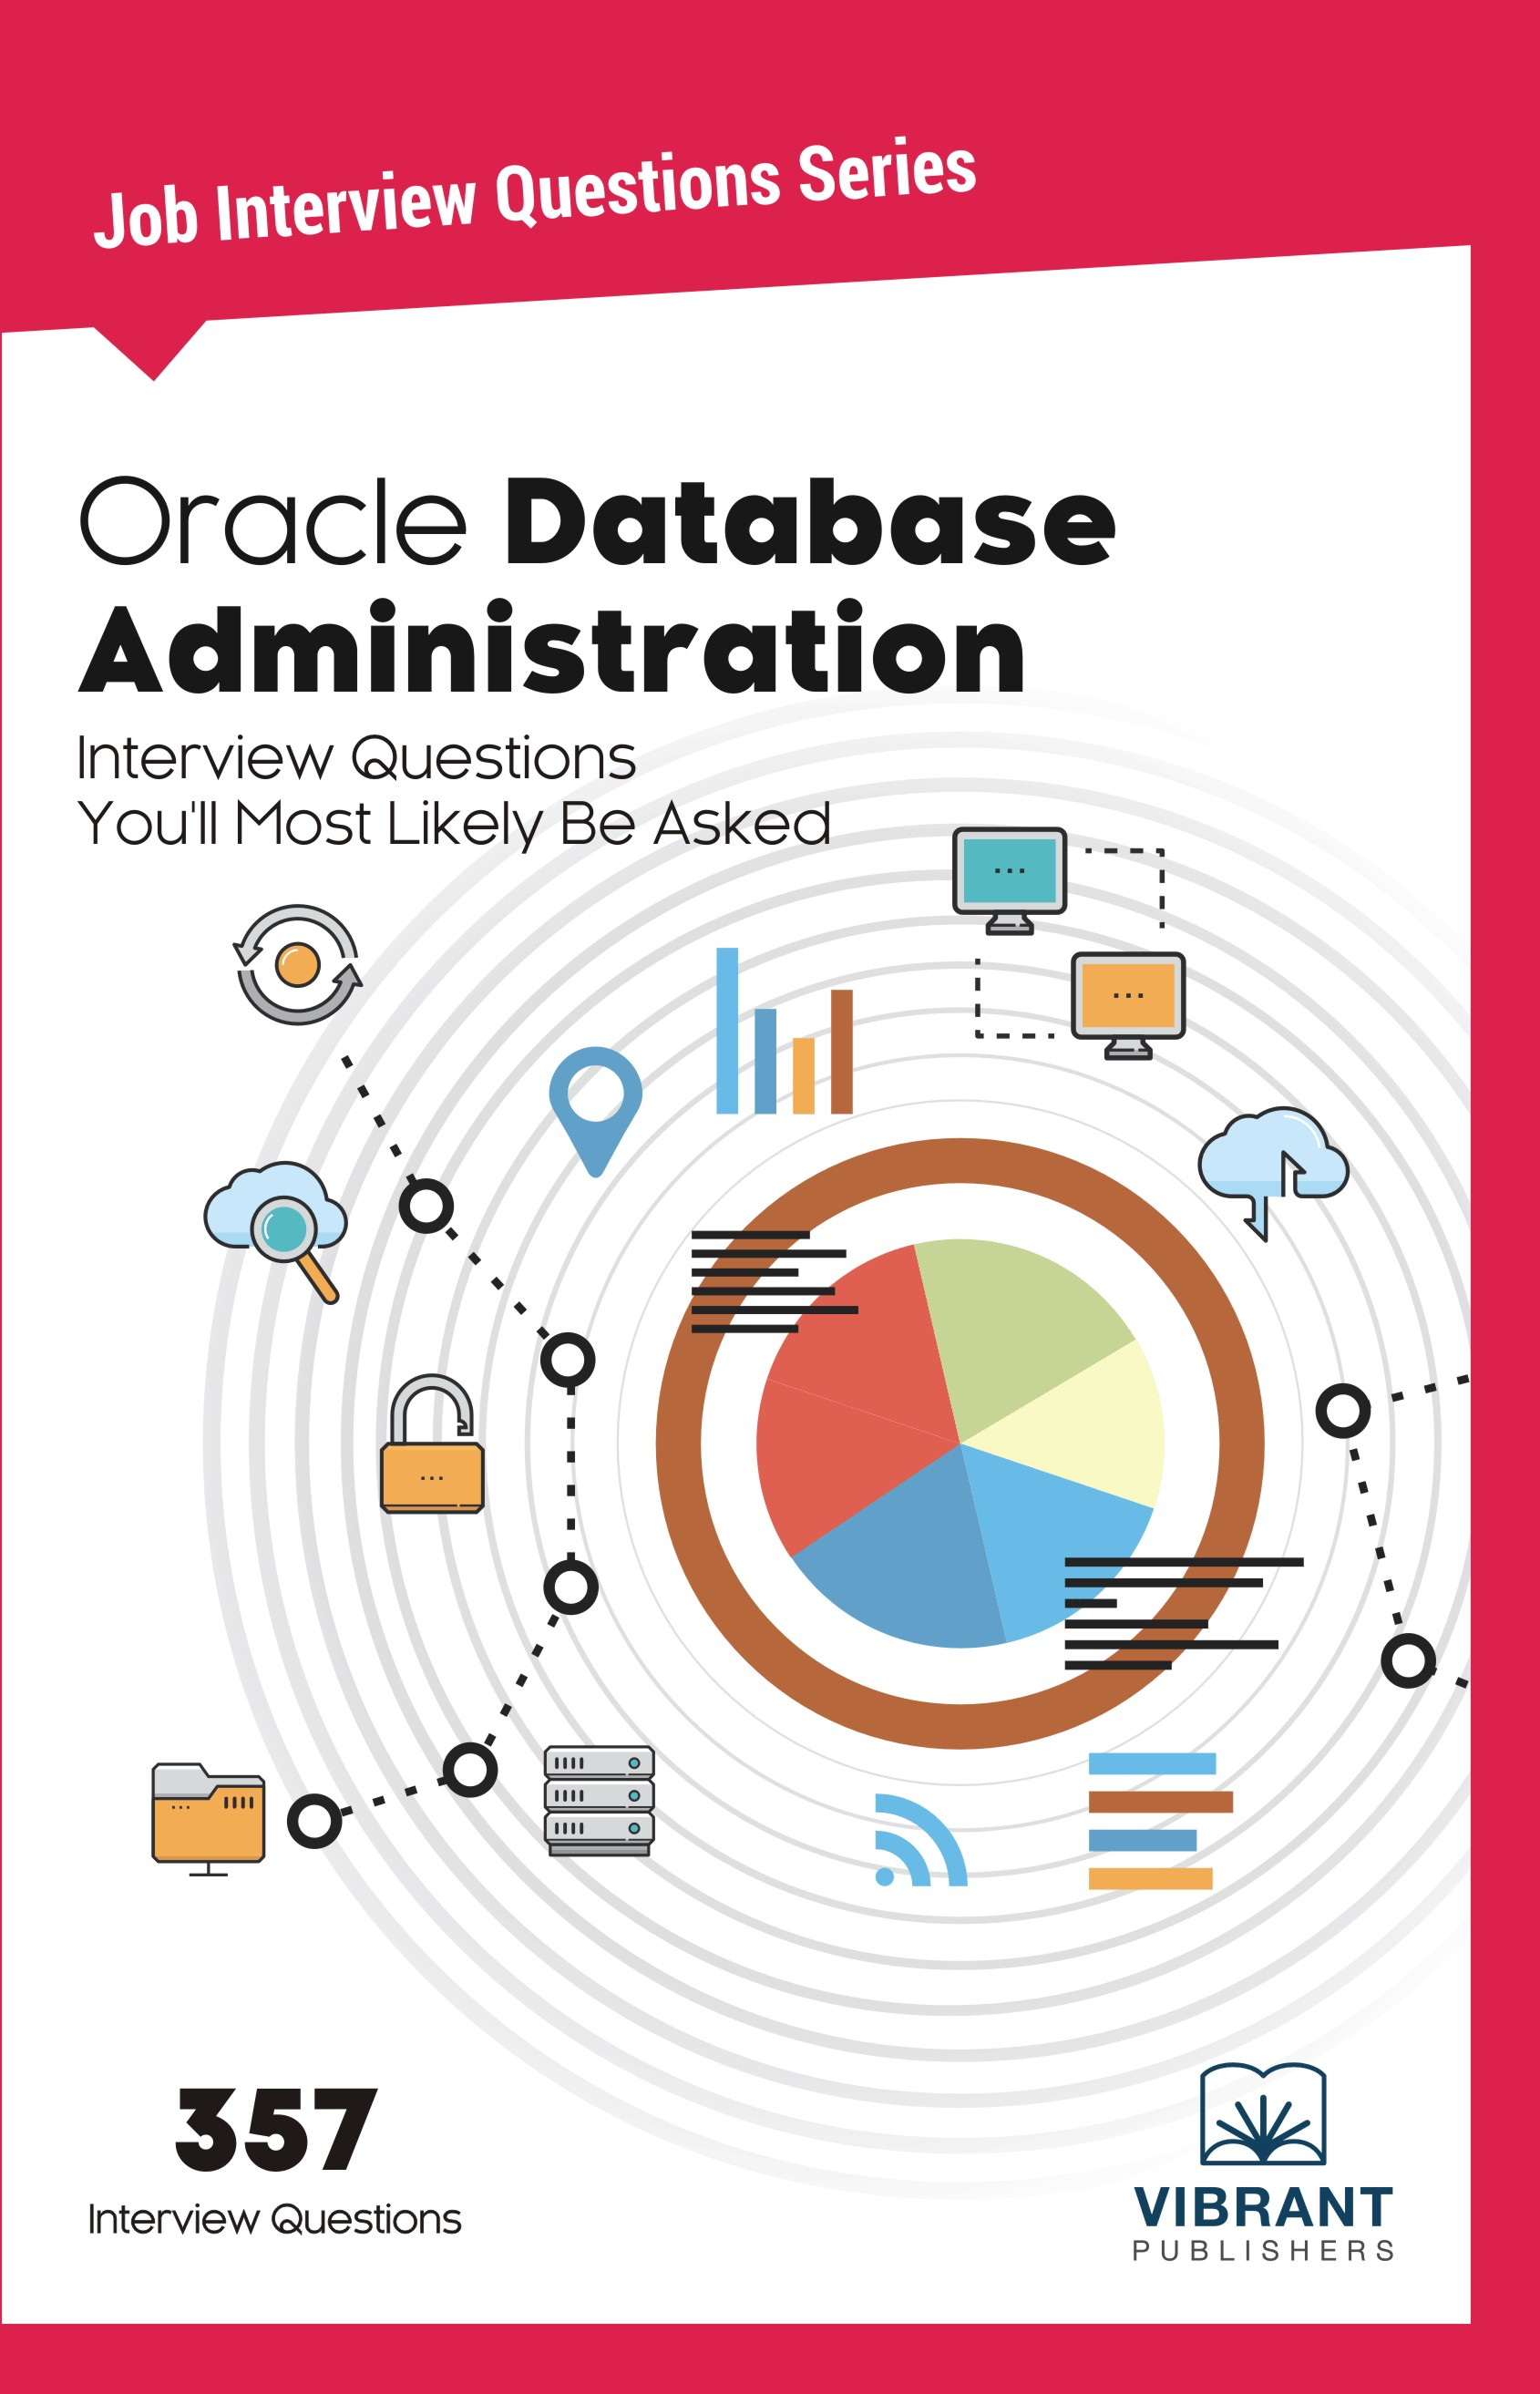 Oracle Database Administration Interview Questions You'll Most Likely Be  Asked, an Ebook by Vibrant Publishers